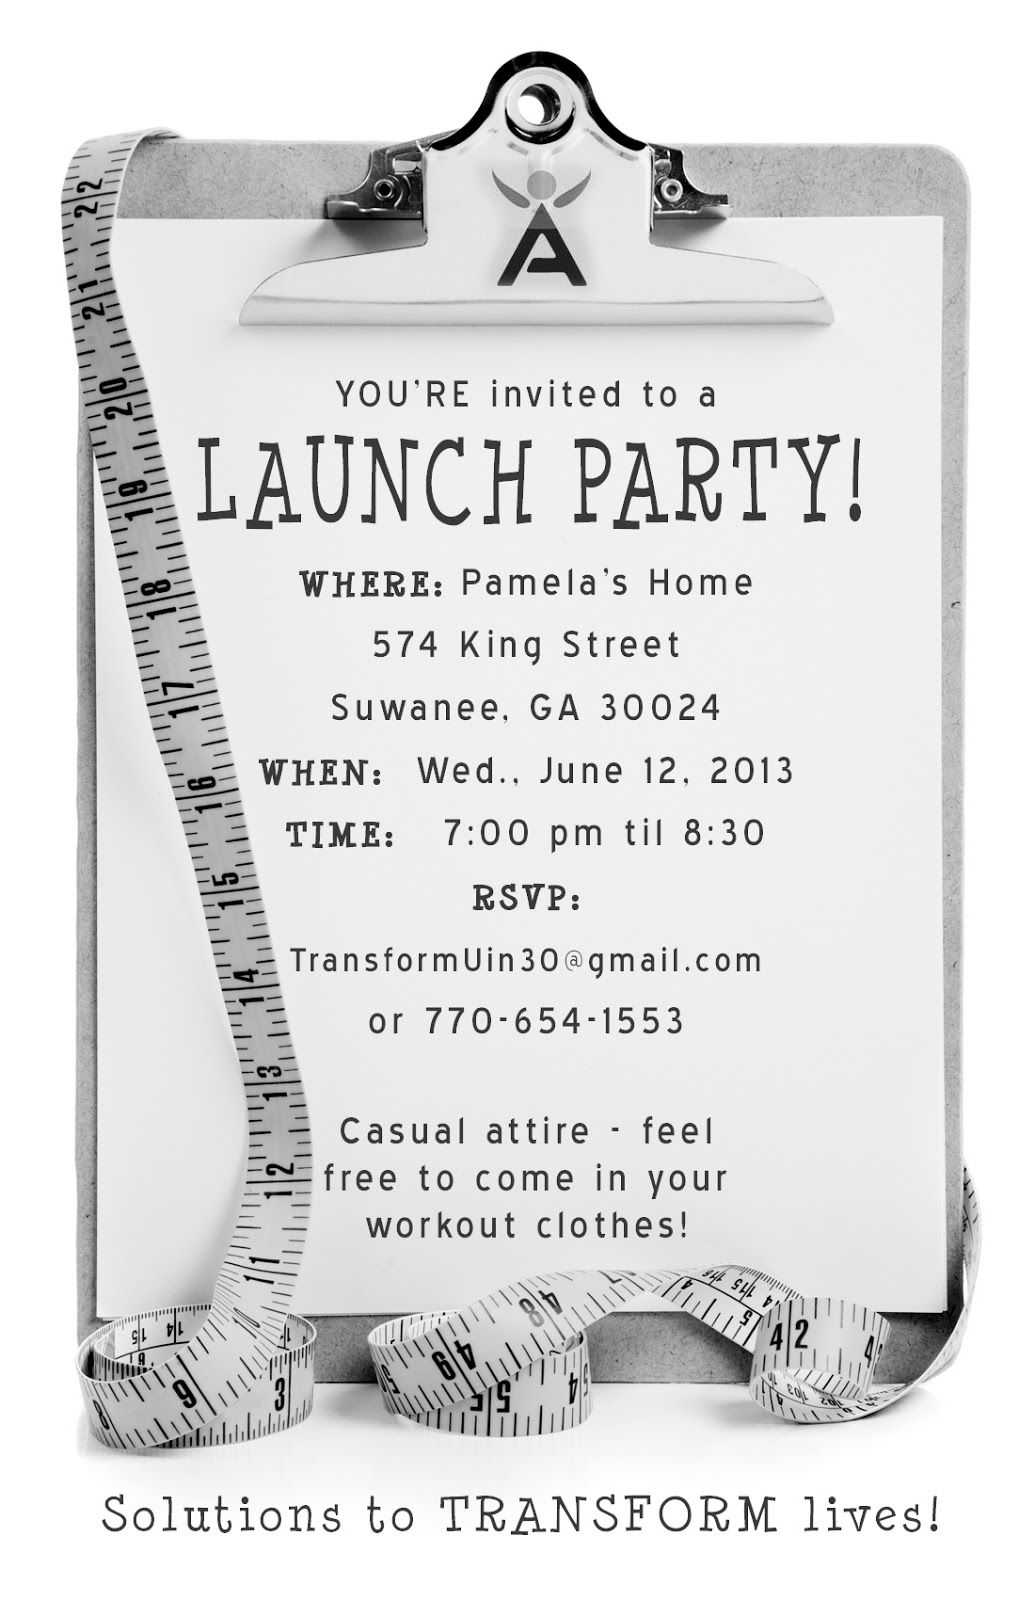 Launch party invitations boatremyeaton launch party invitations stopboris Choice Image